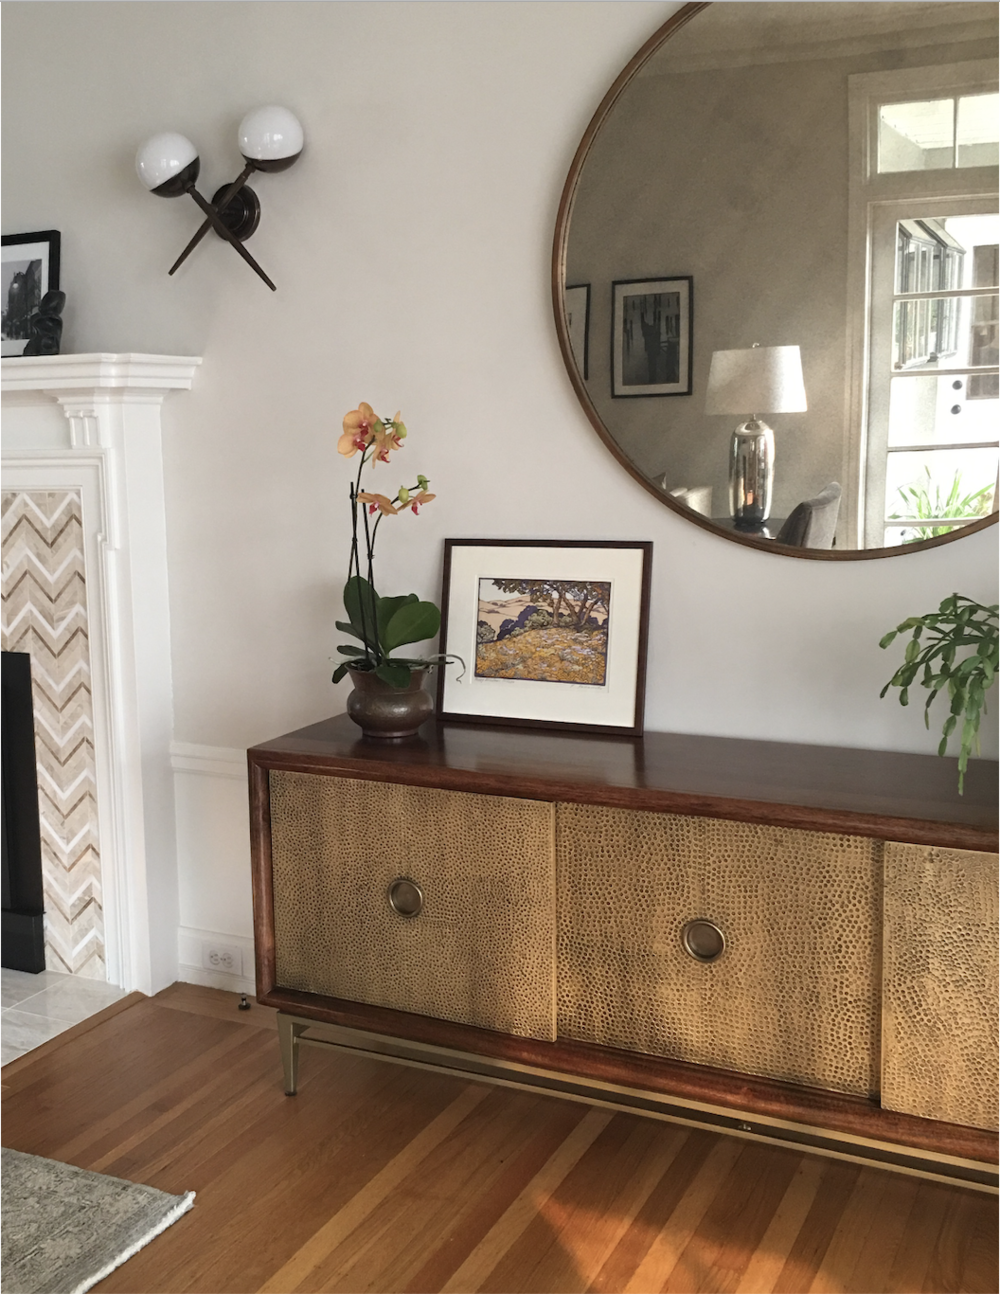 Interior Design Bay Area Before and After Living Room